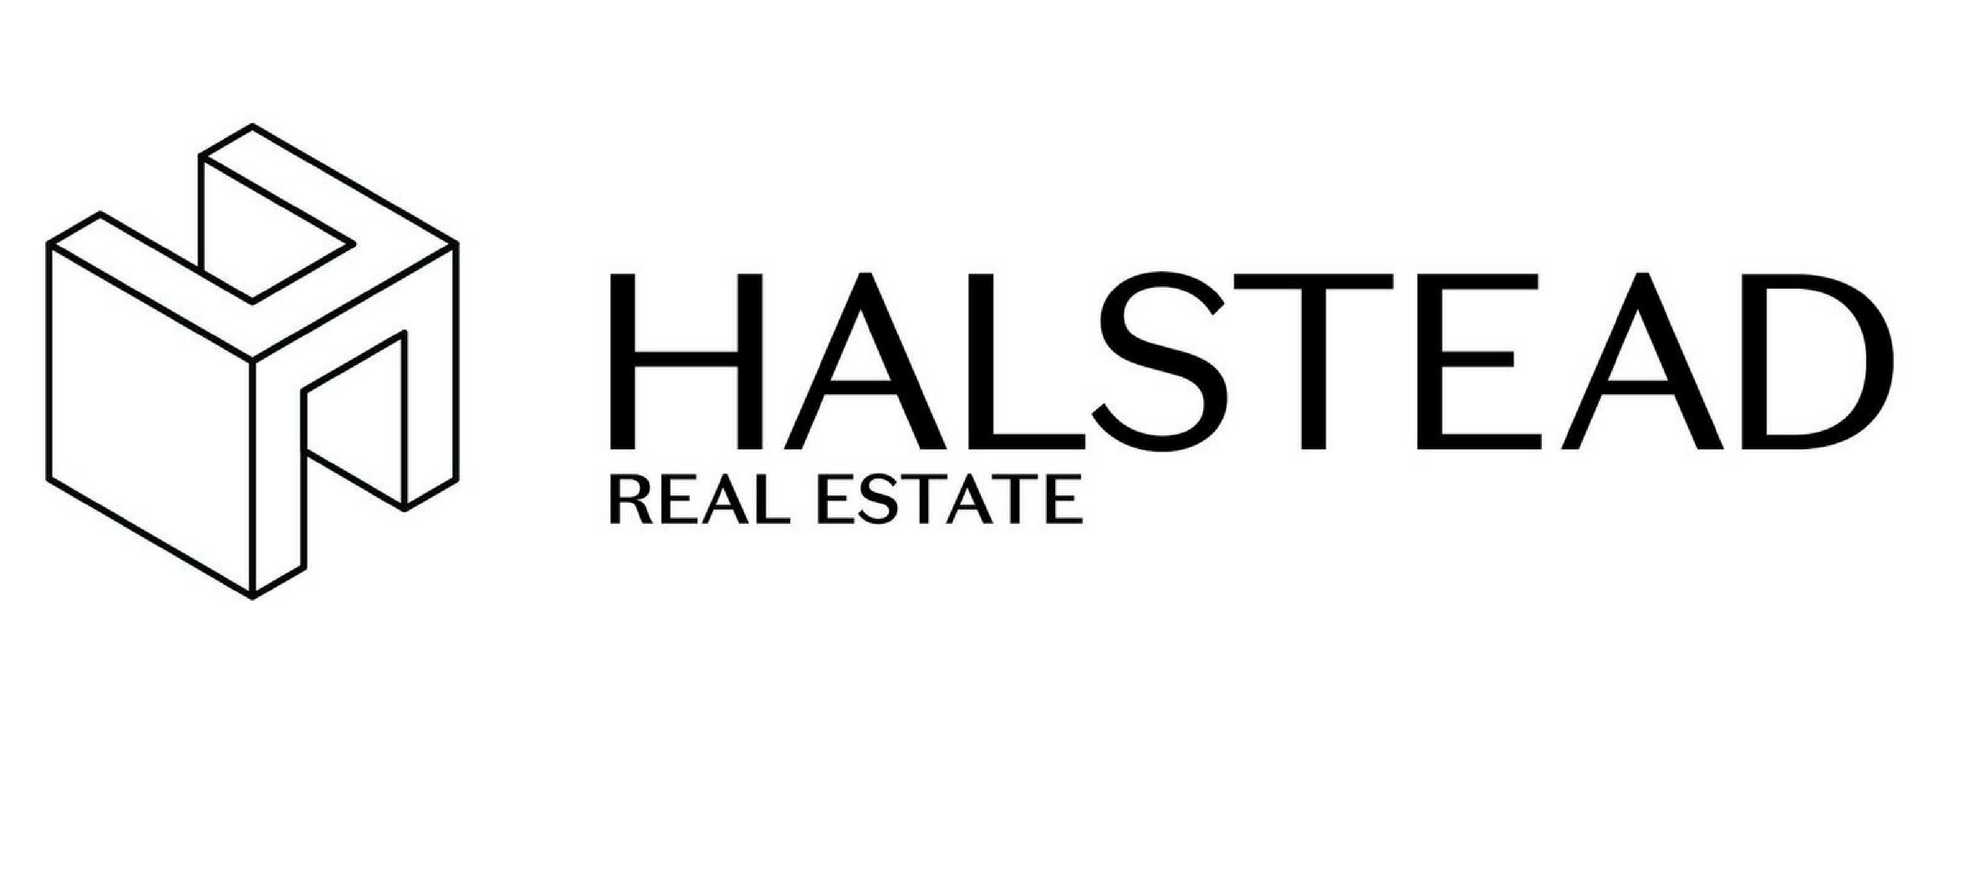 Halstead unveils corporate rebrand costing 'in the millions'